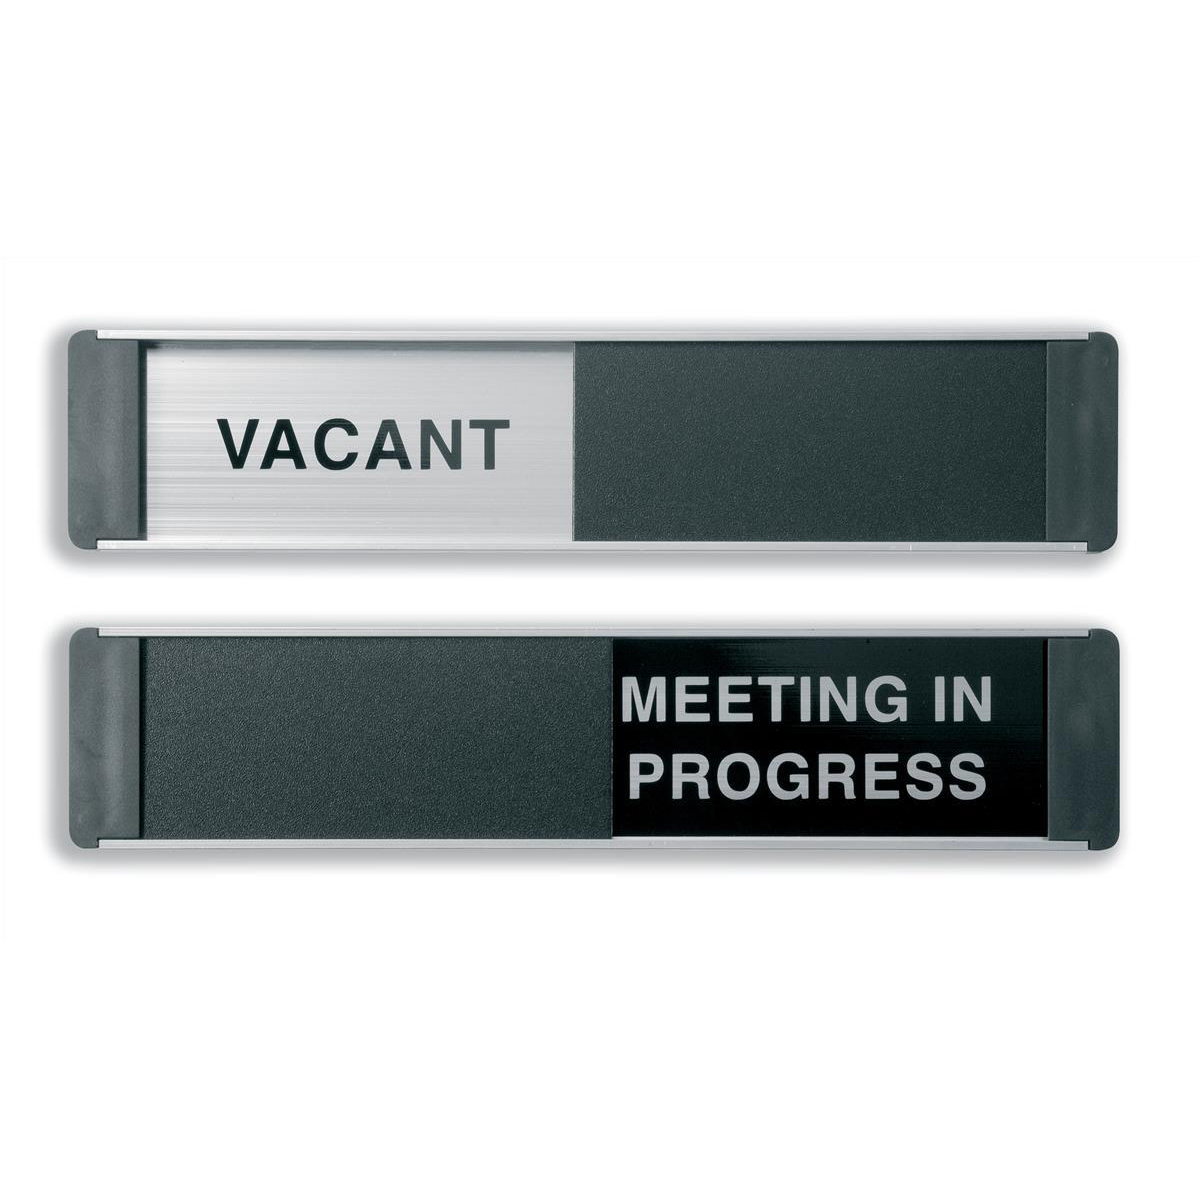 Informational signs Stewart Superior Vacant/Meeting In Progress Door Panel Aluminium/PVC W255xH52mm Self-adhesive Ref OF139